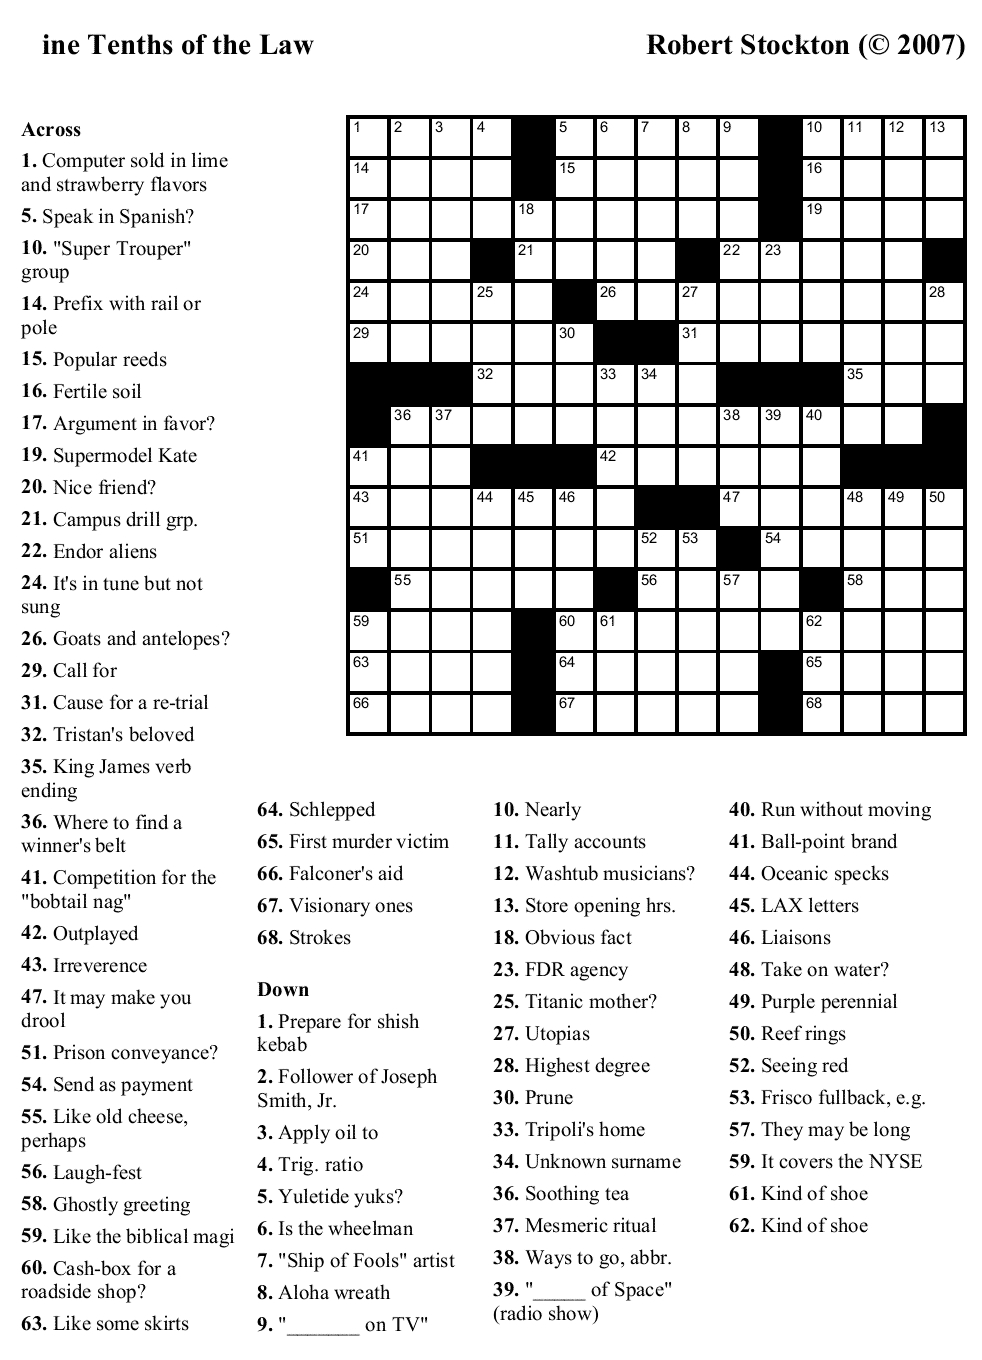 Crossword Puzzles Printable - Yahoo Image Search Results | Crossword - Printable Crossword Puzzle Solutions